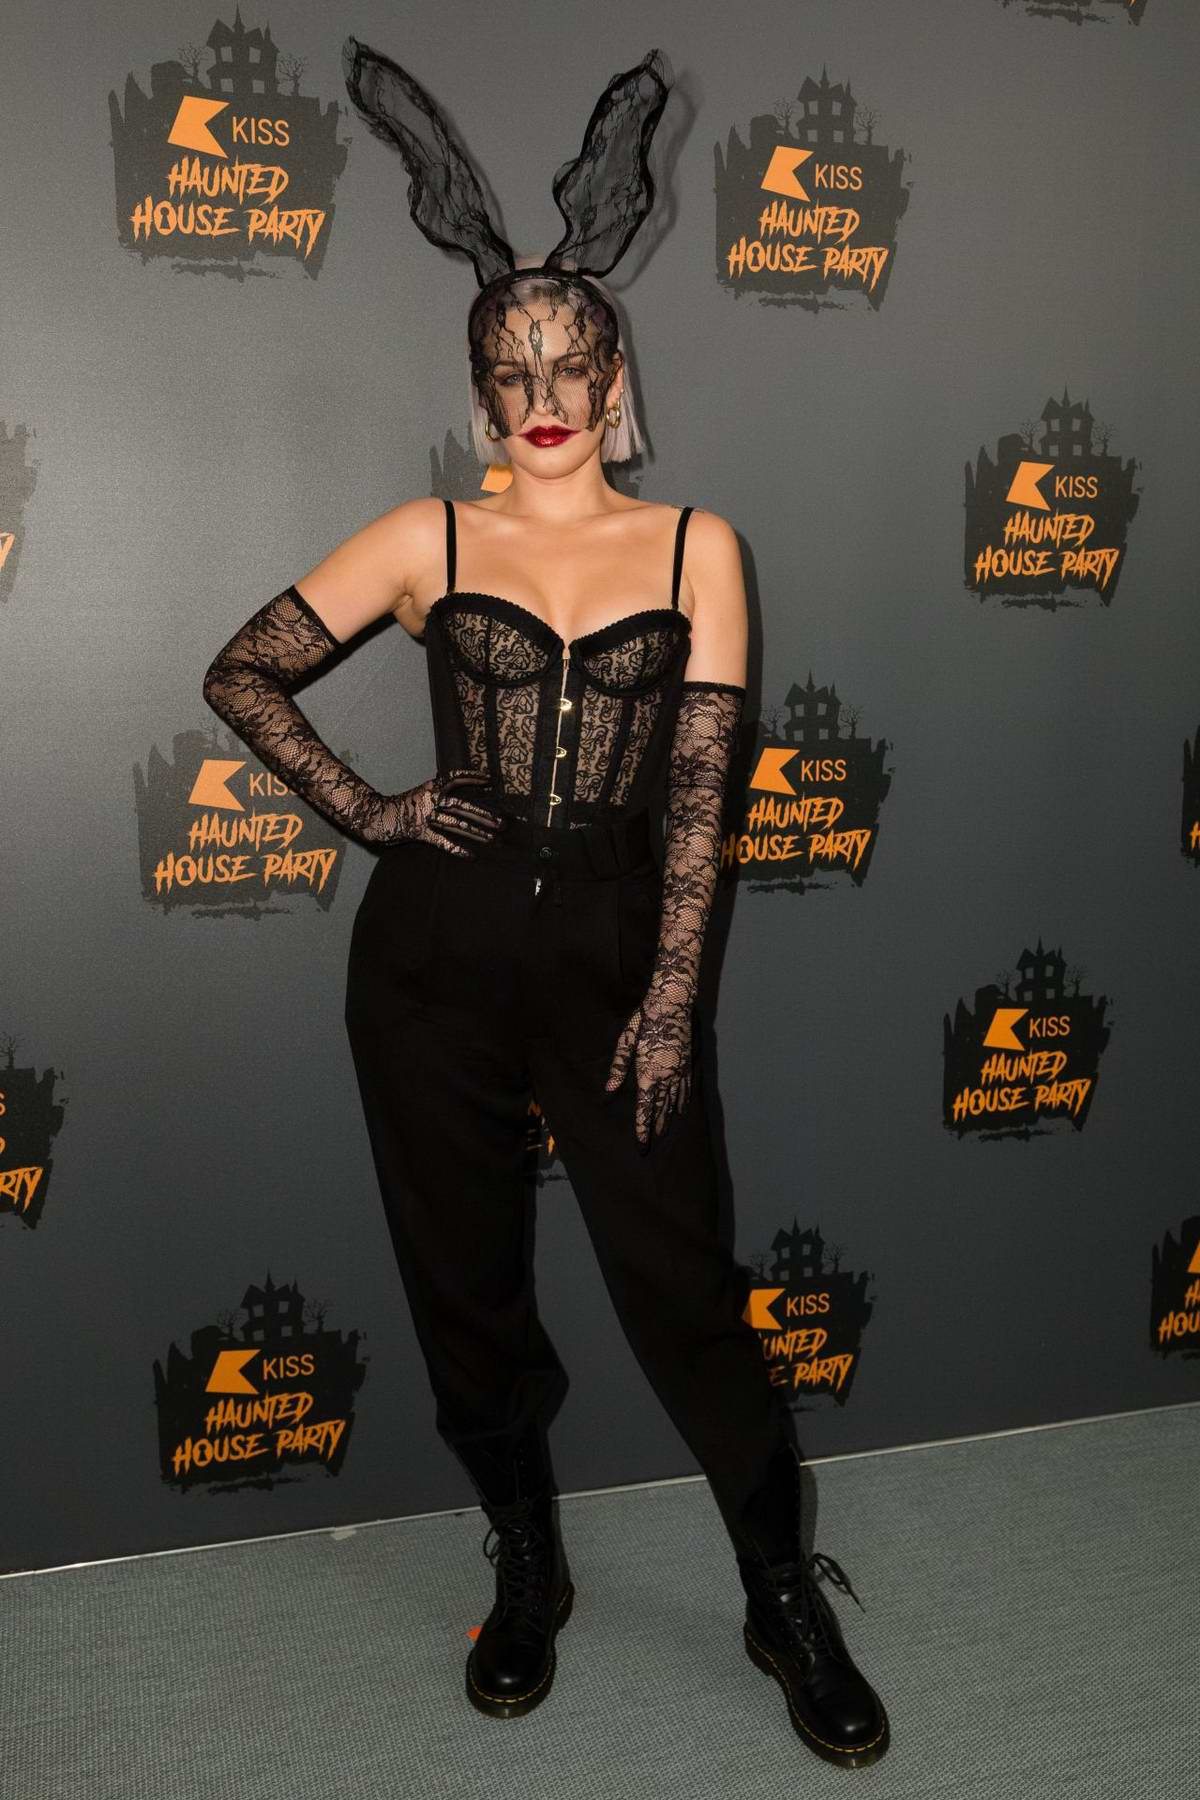 Anne-Marie Rose Nicholson attends the KISS Haunted House Party 2018 in London, UK